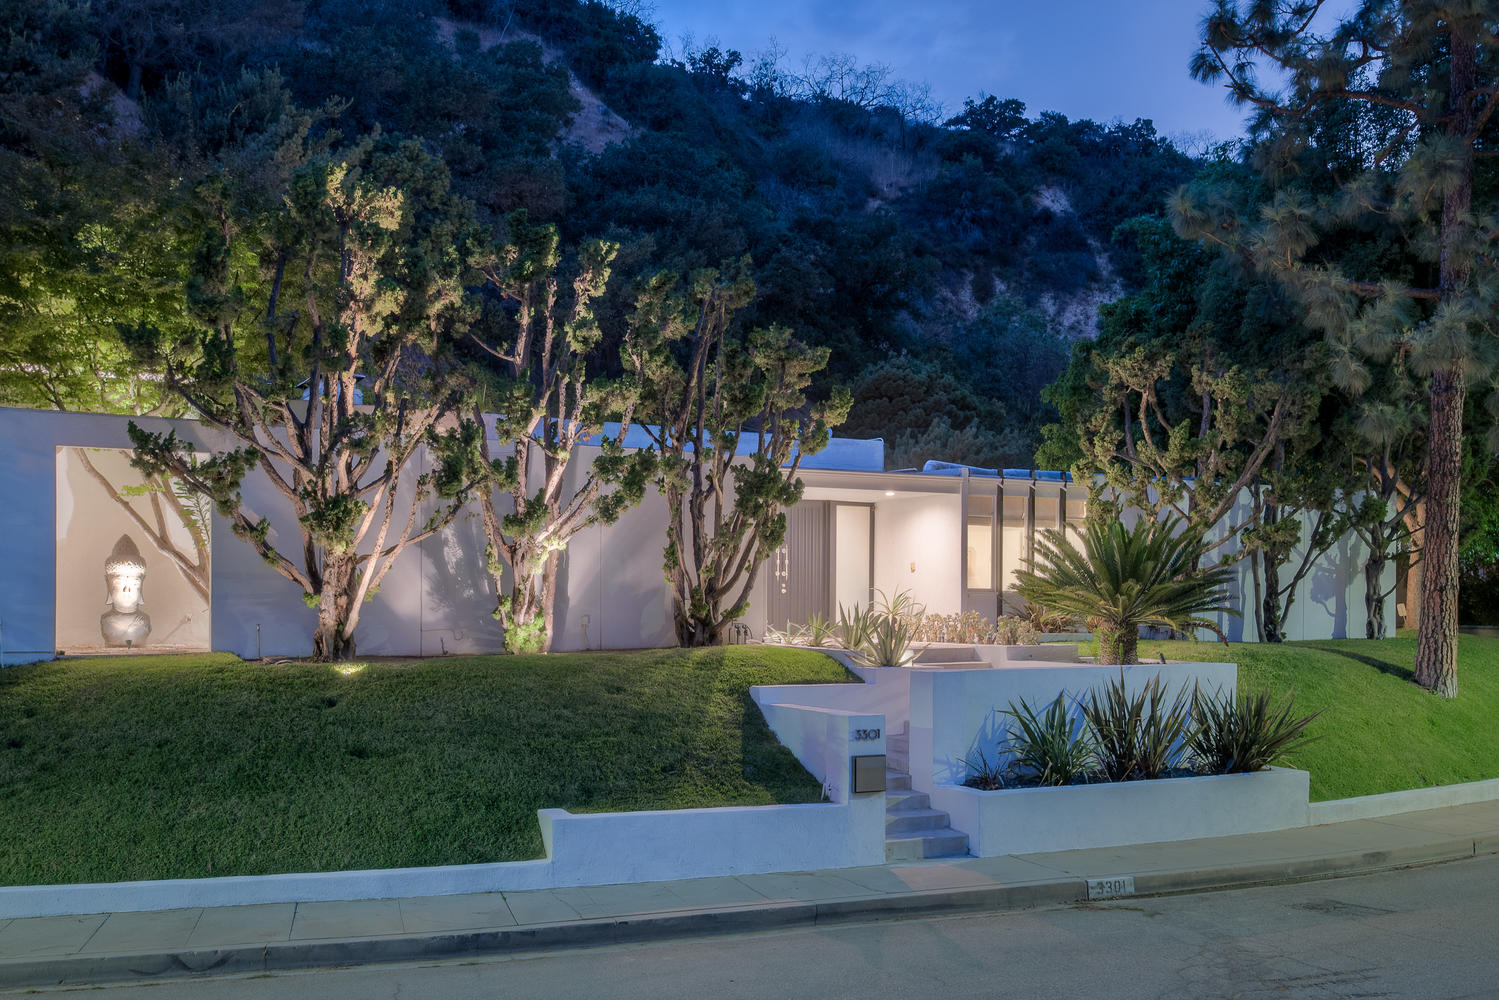 Modern homes los angeles brentwood untouched 1960 mid century modern - Sleek Midcentury Modern By Benton Park Up For Grabs In Sherman Oaks Affluent Longridge Estates